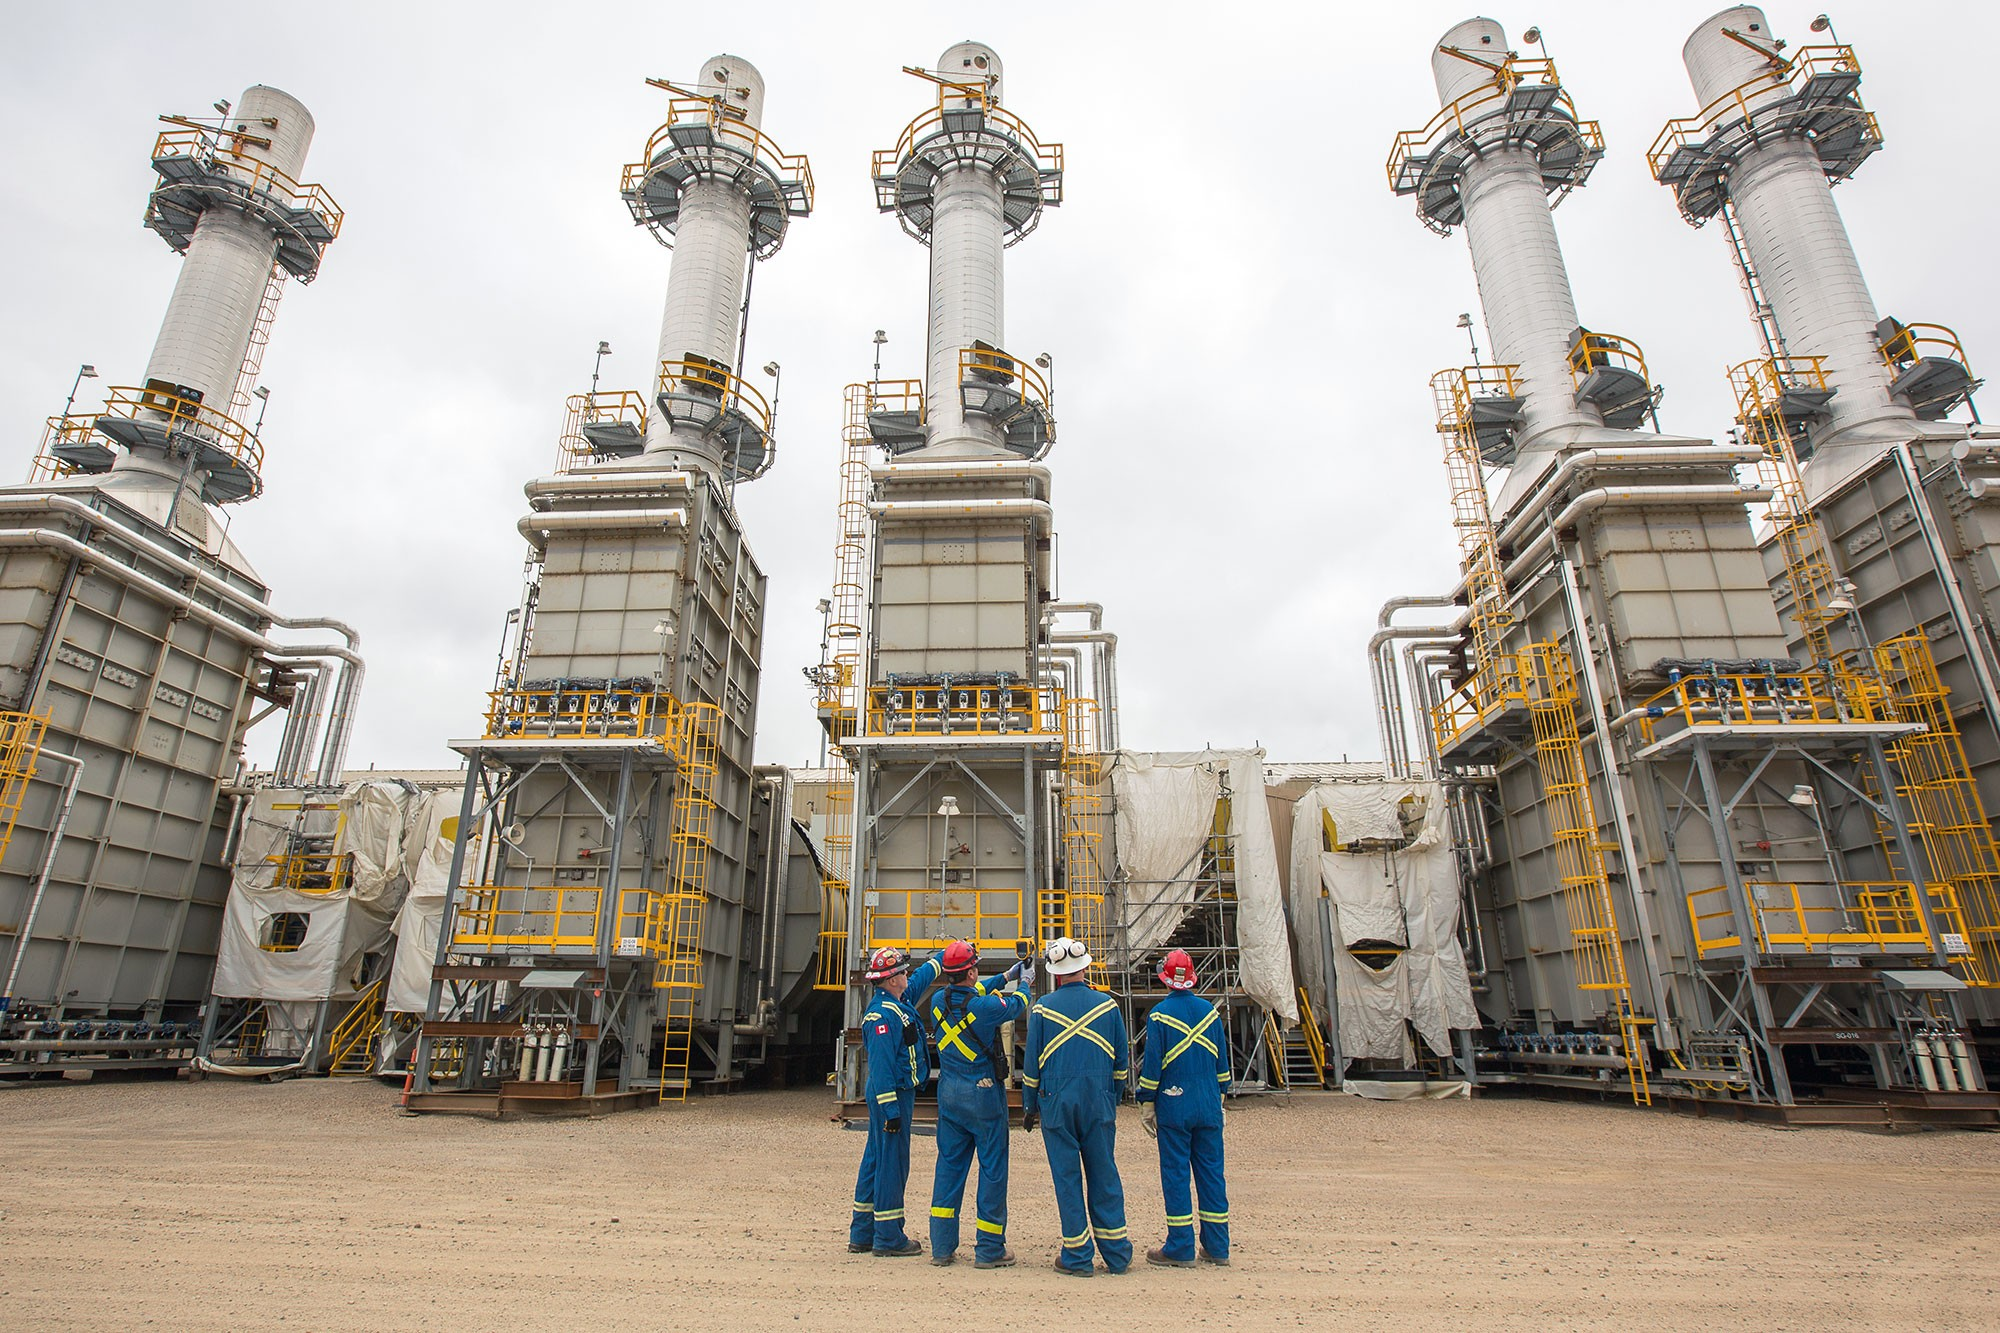 4 workers wearing protective clothing with towers in background